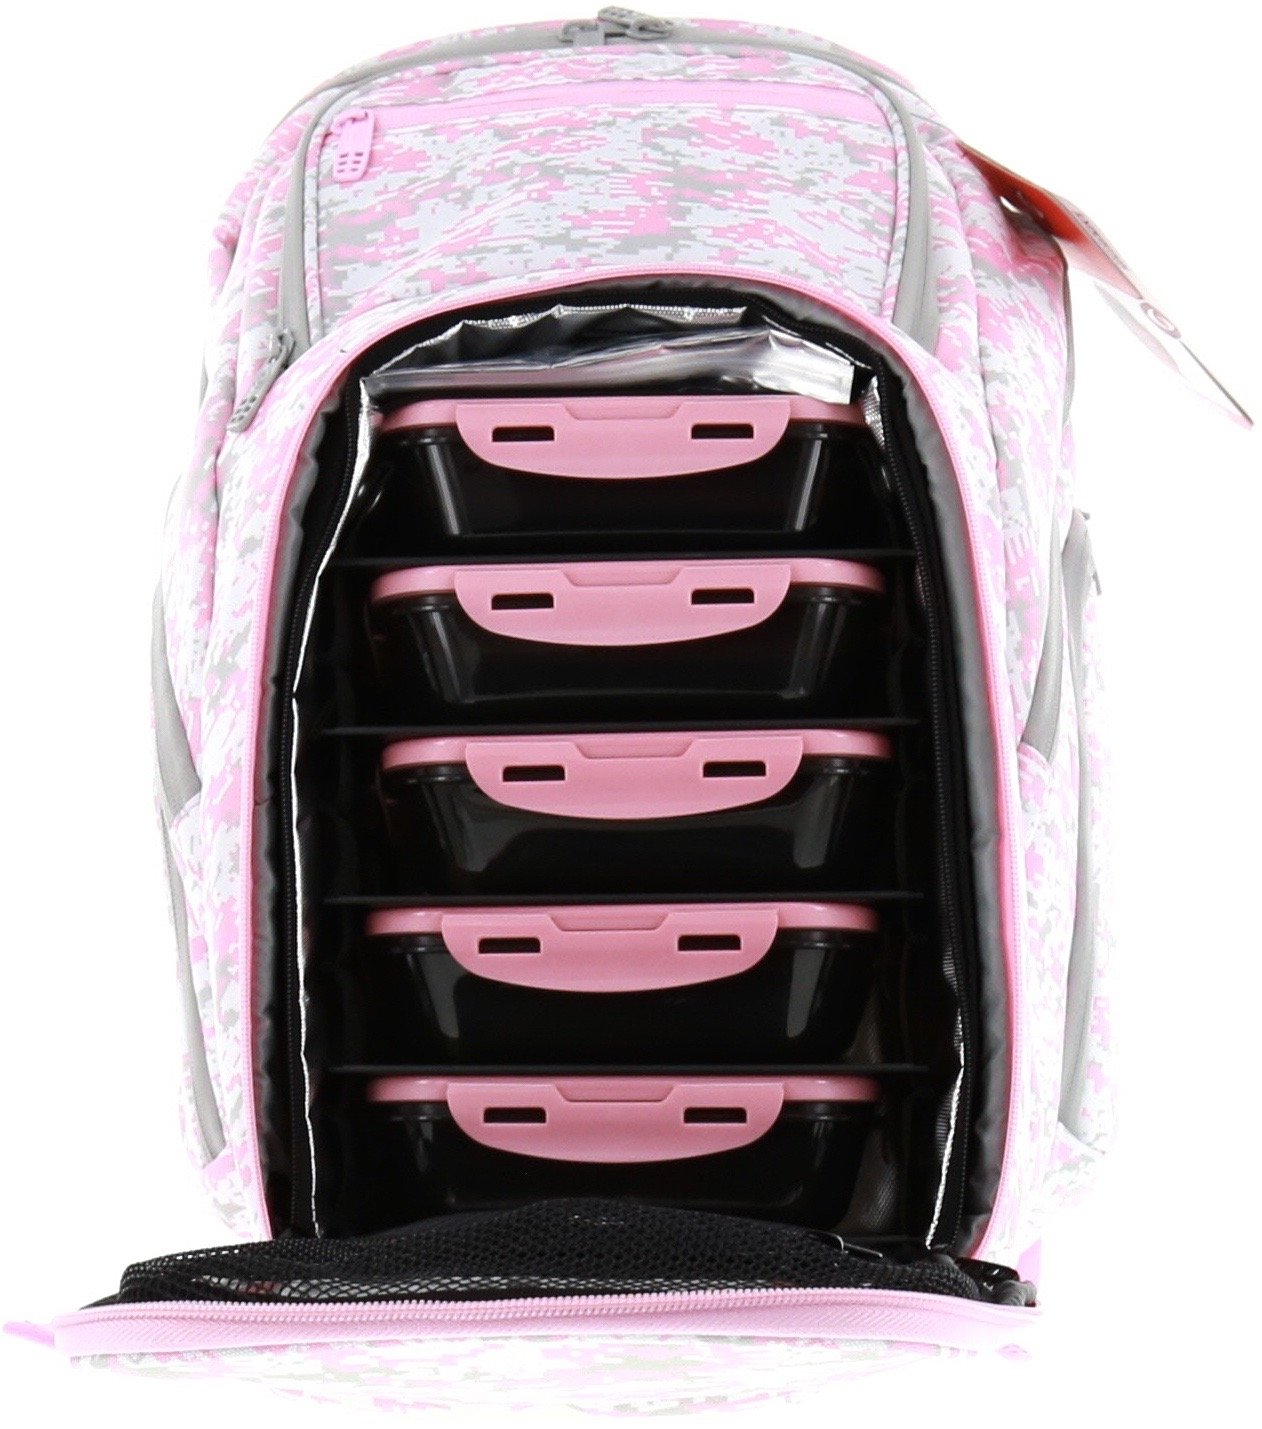 6 Pack Fitness Expedition Backpack W/ Removable Meal Management System 500 Pink & Grey Digital Camo w/ Bonus ZogoSportz Cyclone Shaker by 6 Pack Fitness (Image #5)